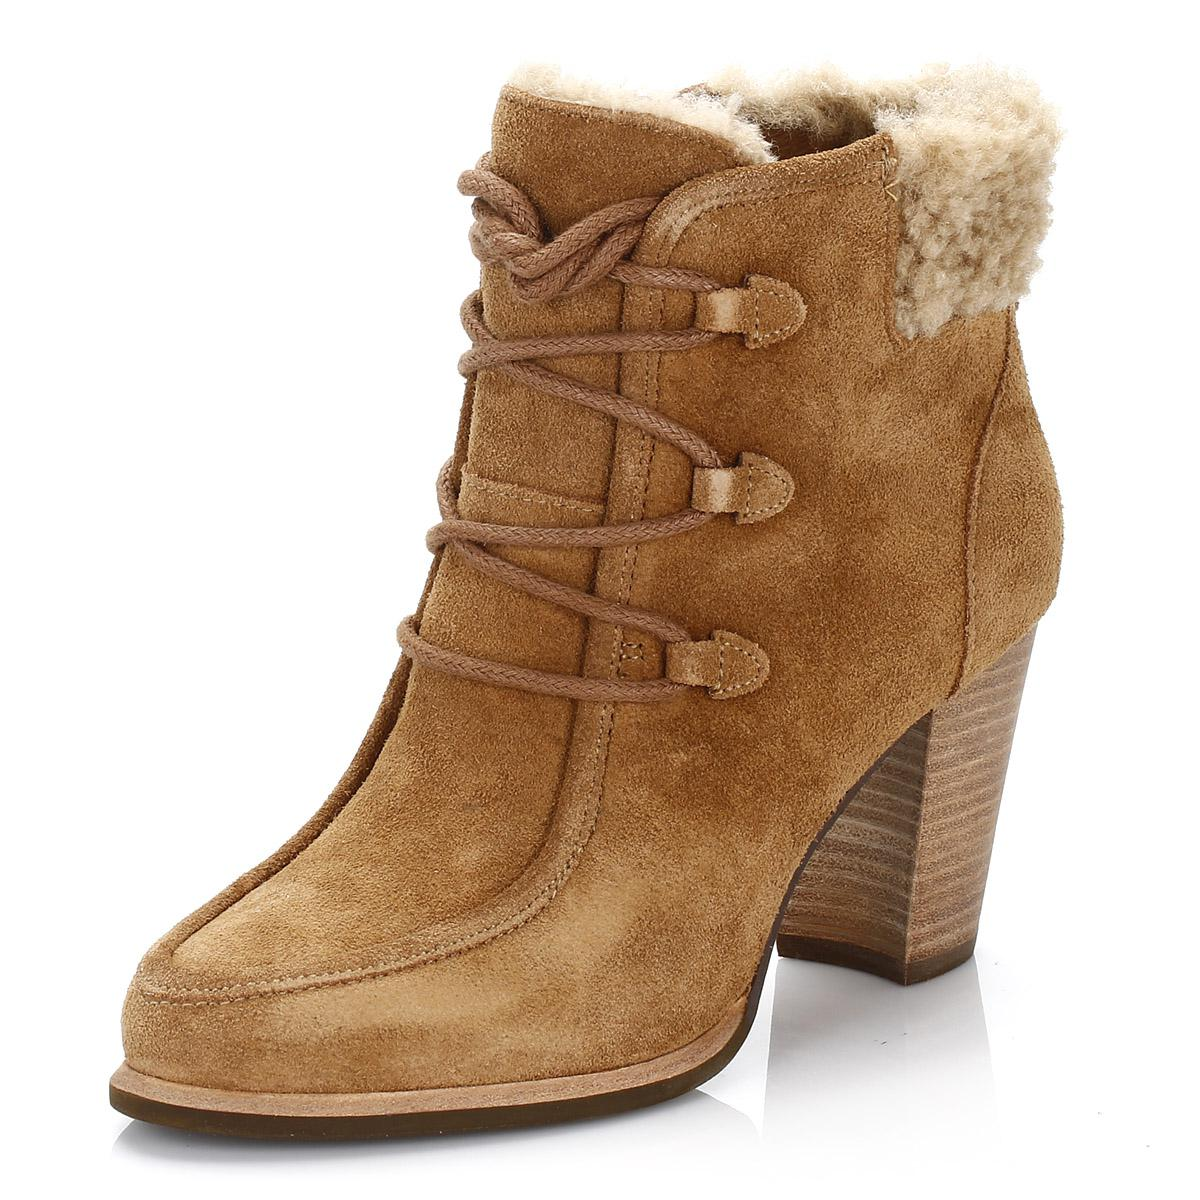 Ugg | Ugg Womens Chestnut Brown Analise Suede Boots | Lyst. View Fullscreen